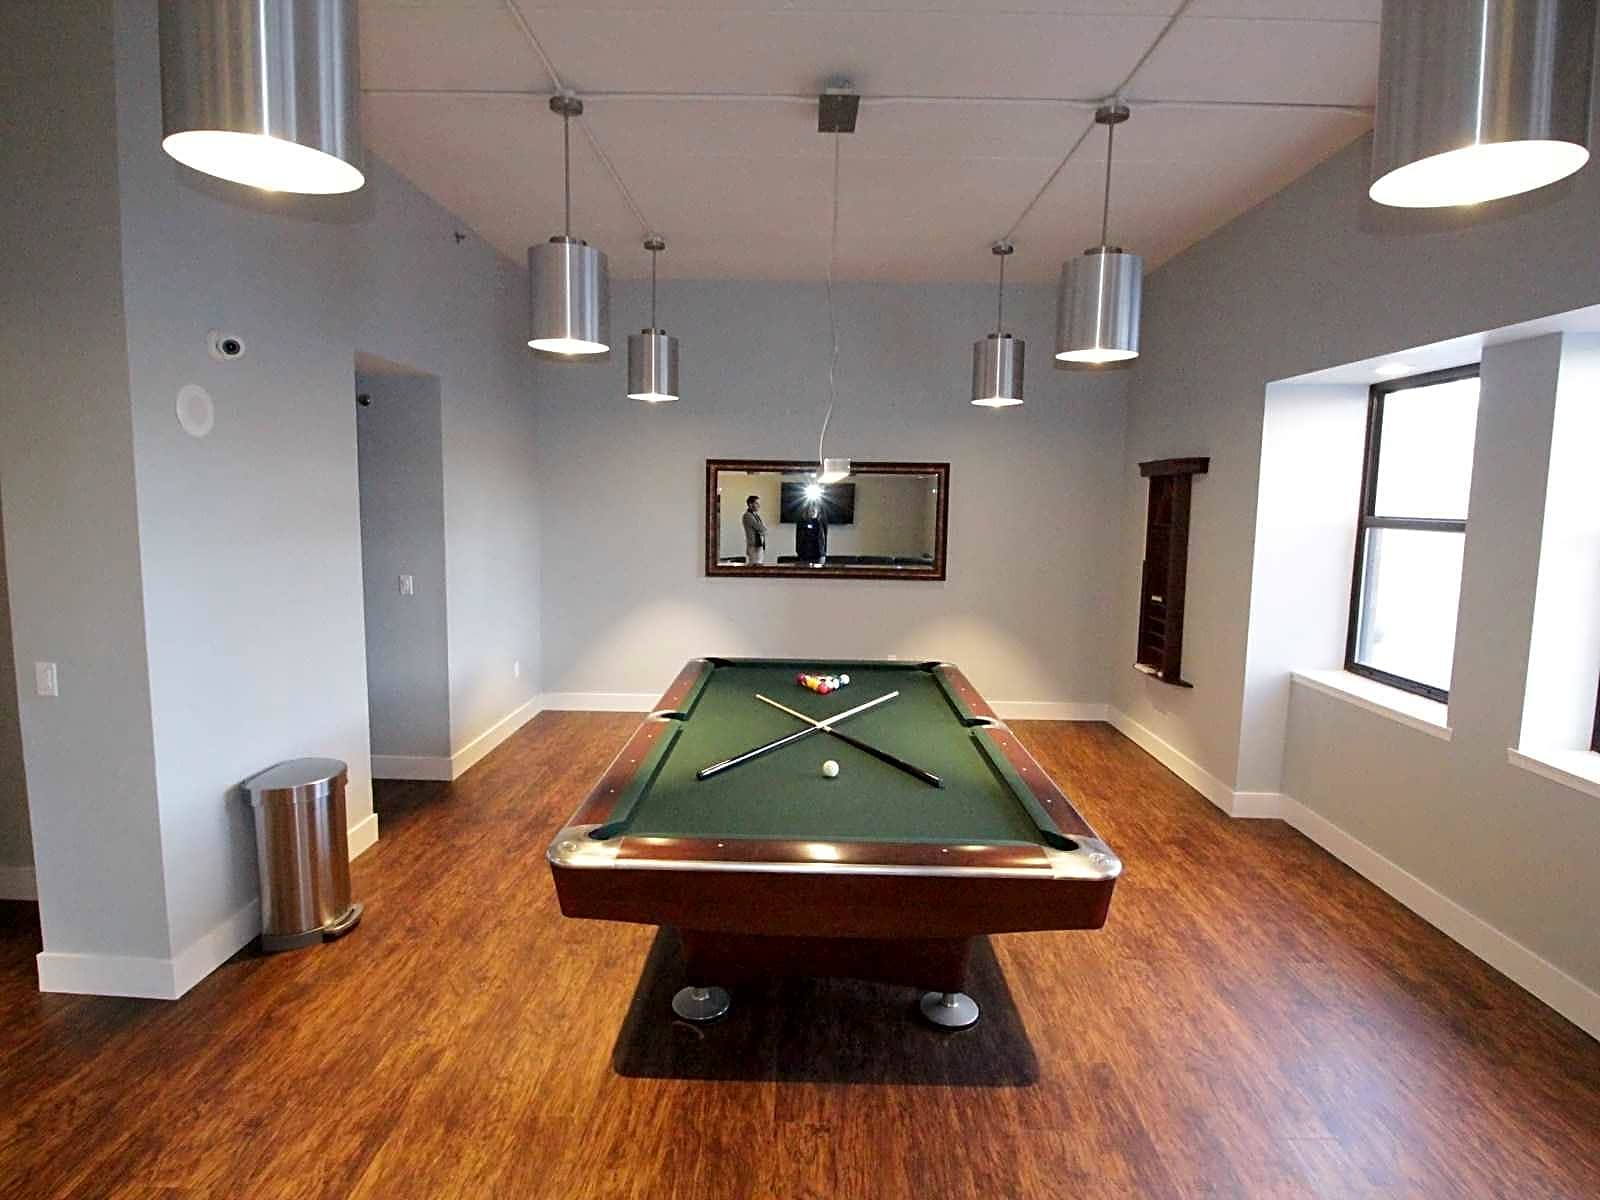 New Media Room With Billiard Table